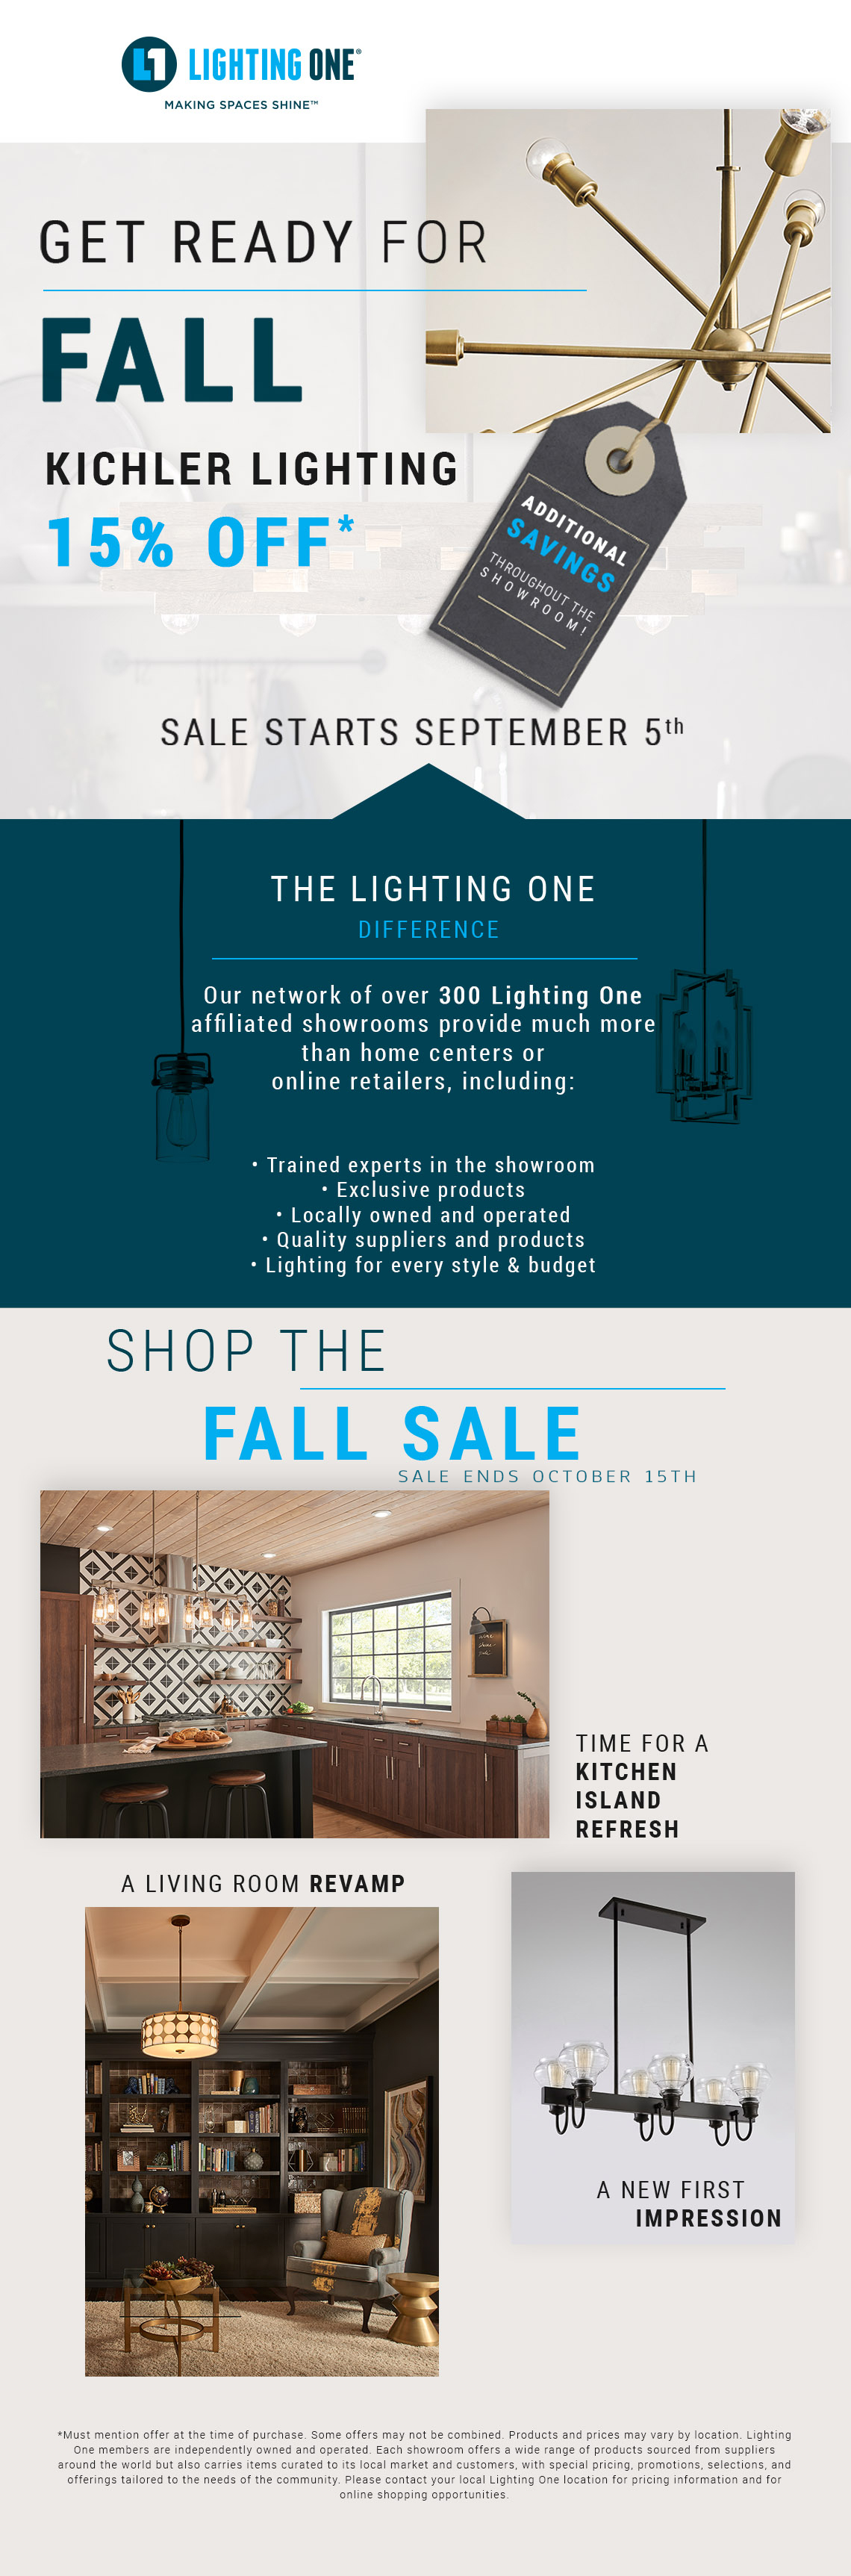 Kichler Lighting Sale